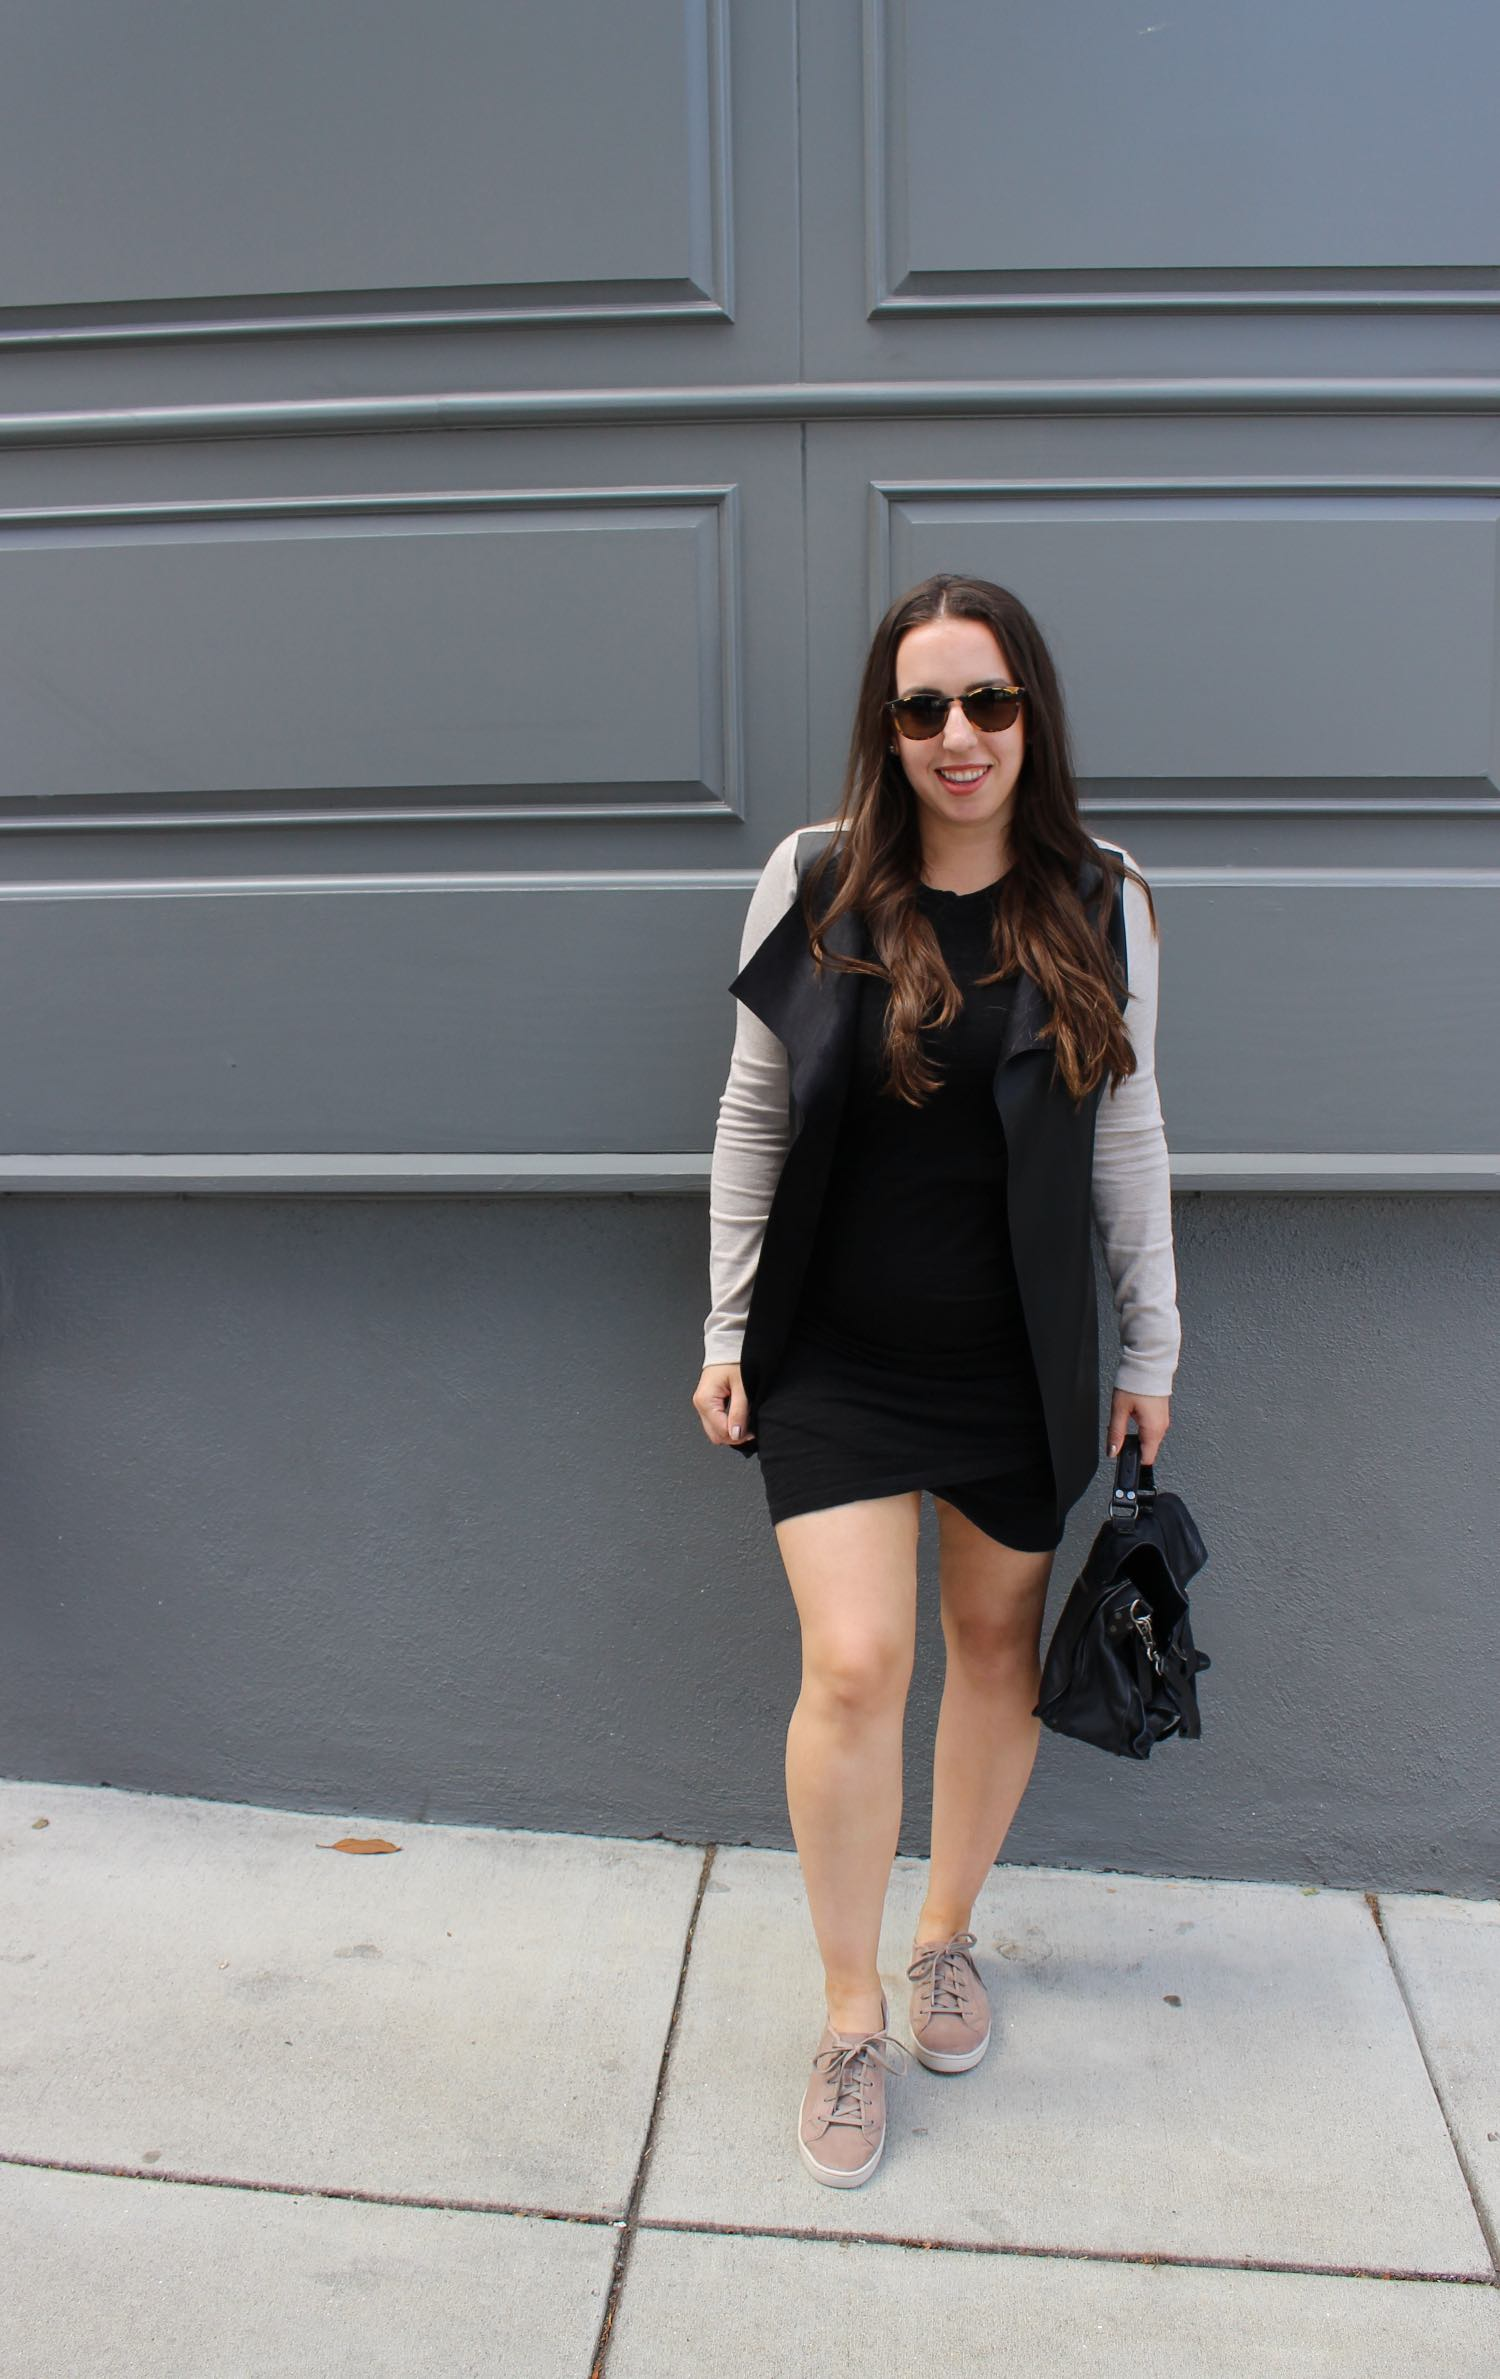 sf blogger in minimalist outfit wearing proenza schouler ps1 satchel